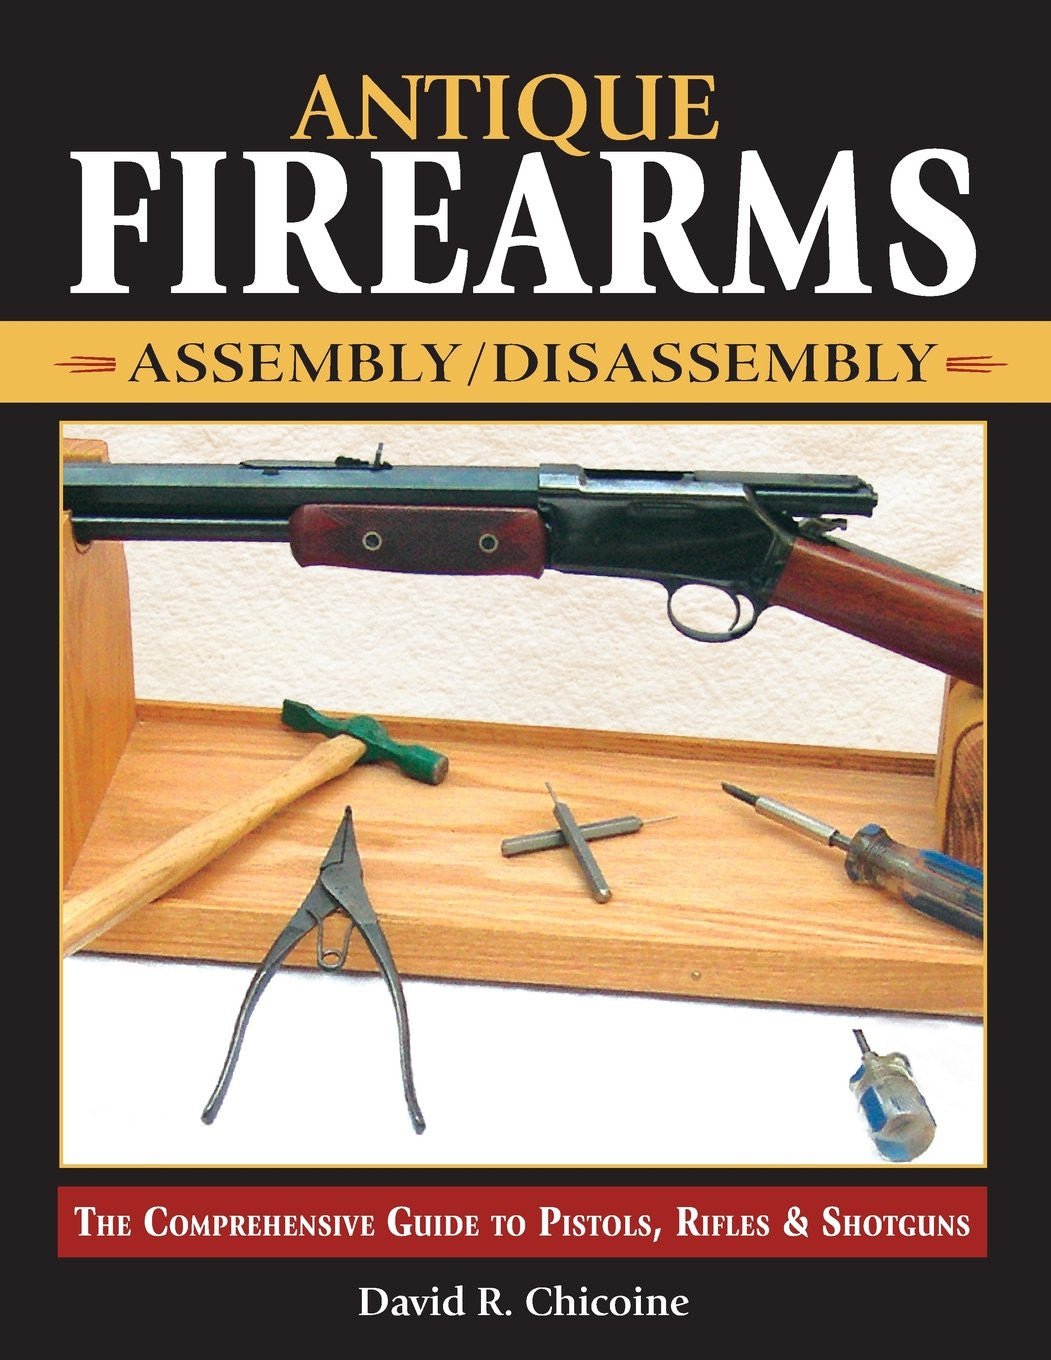 """Antique Firearms Assembly/Disassembly: The comprehensive guide to pistols, rifles & shotguns"" by David Chicoine"